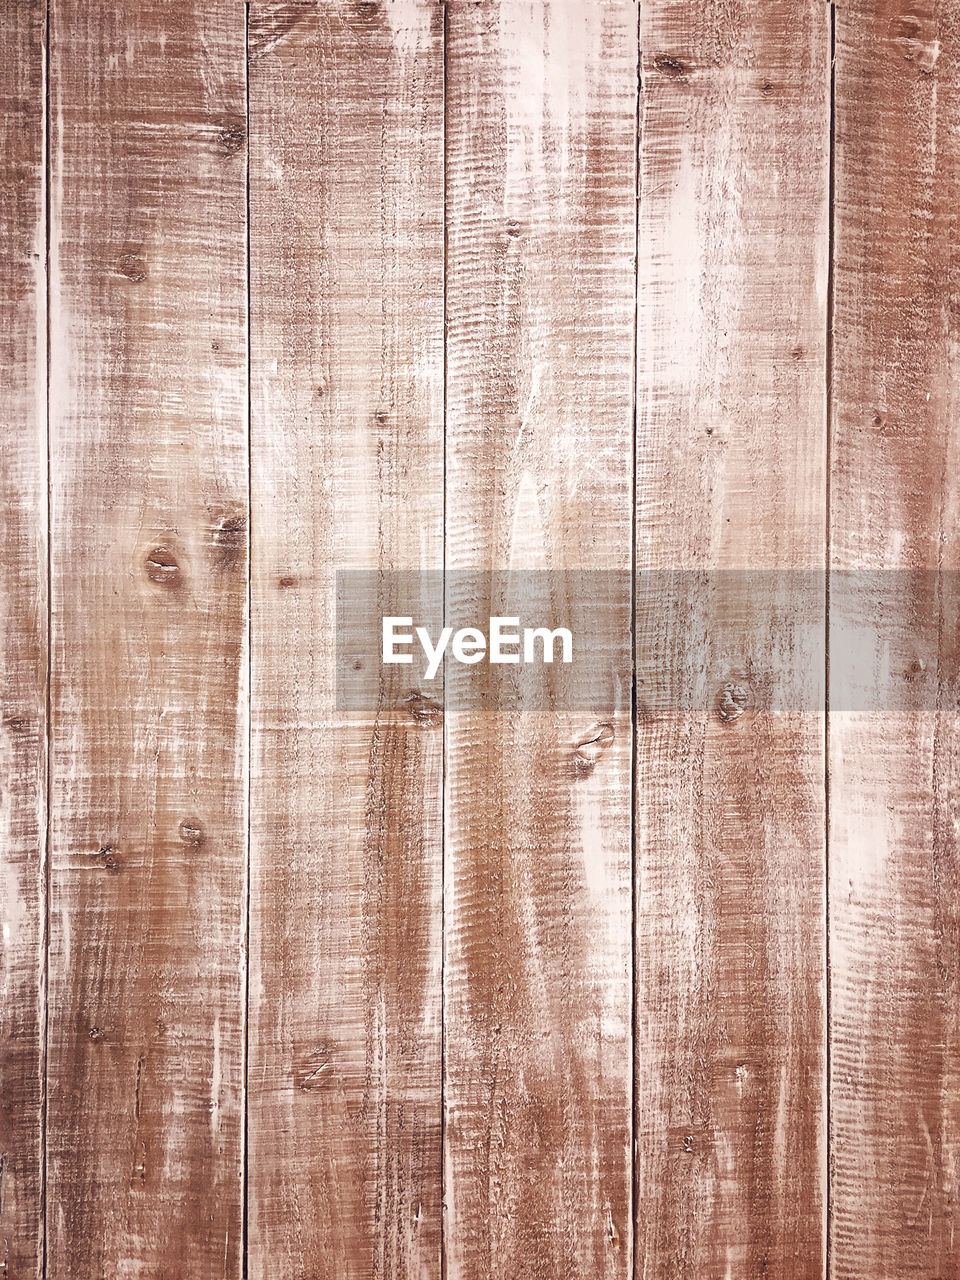 backgrounds, textured, full frame, wood, pattern, flooring, wood - material, wood grain, old, no people, brown, plank, hardwood floor, close-up, material, scratched, dirt, hardwood, retro styled, indoors, abstract, dirty, wood paneling, textured effect, blank, surface level, parquet floor